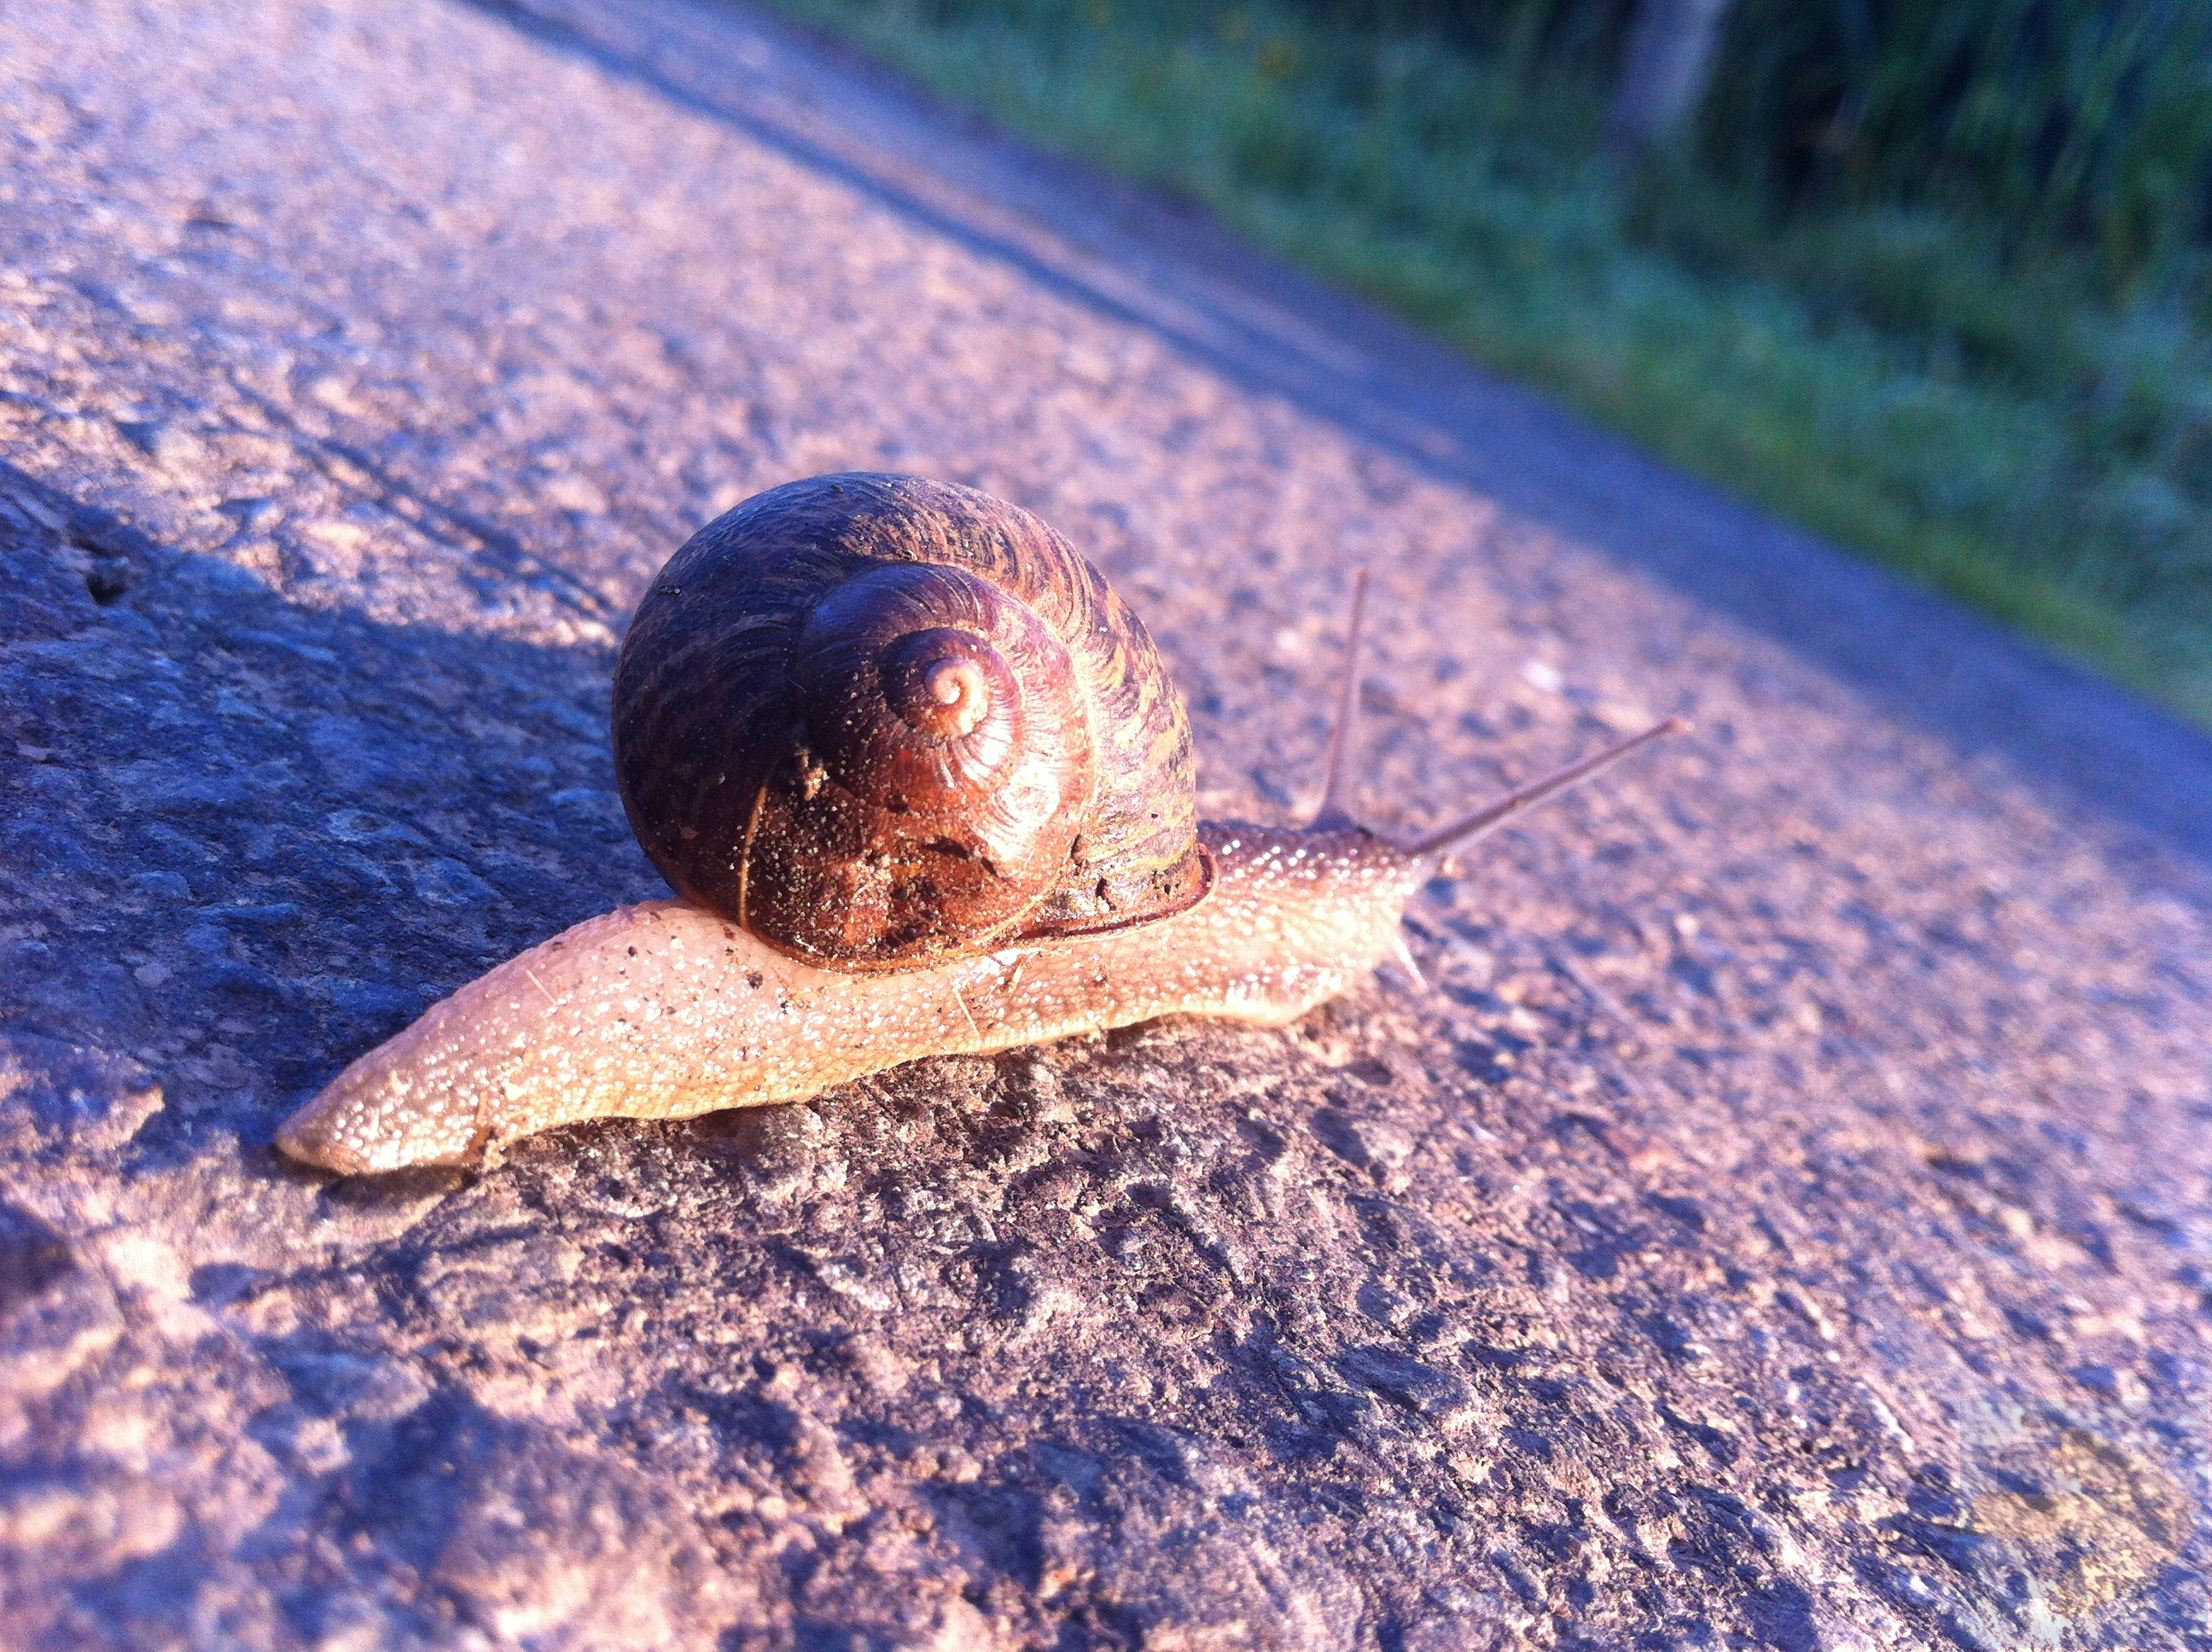 A snail like us...